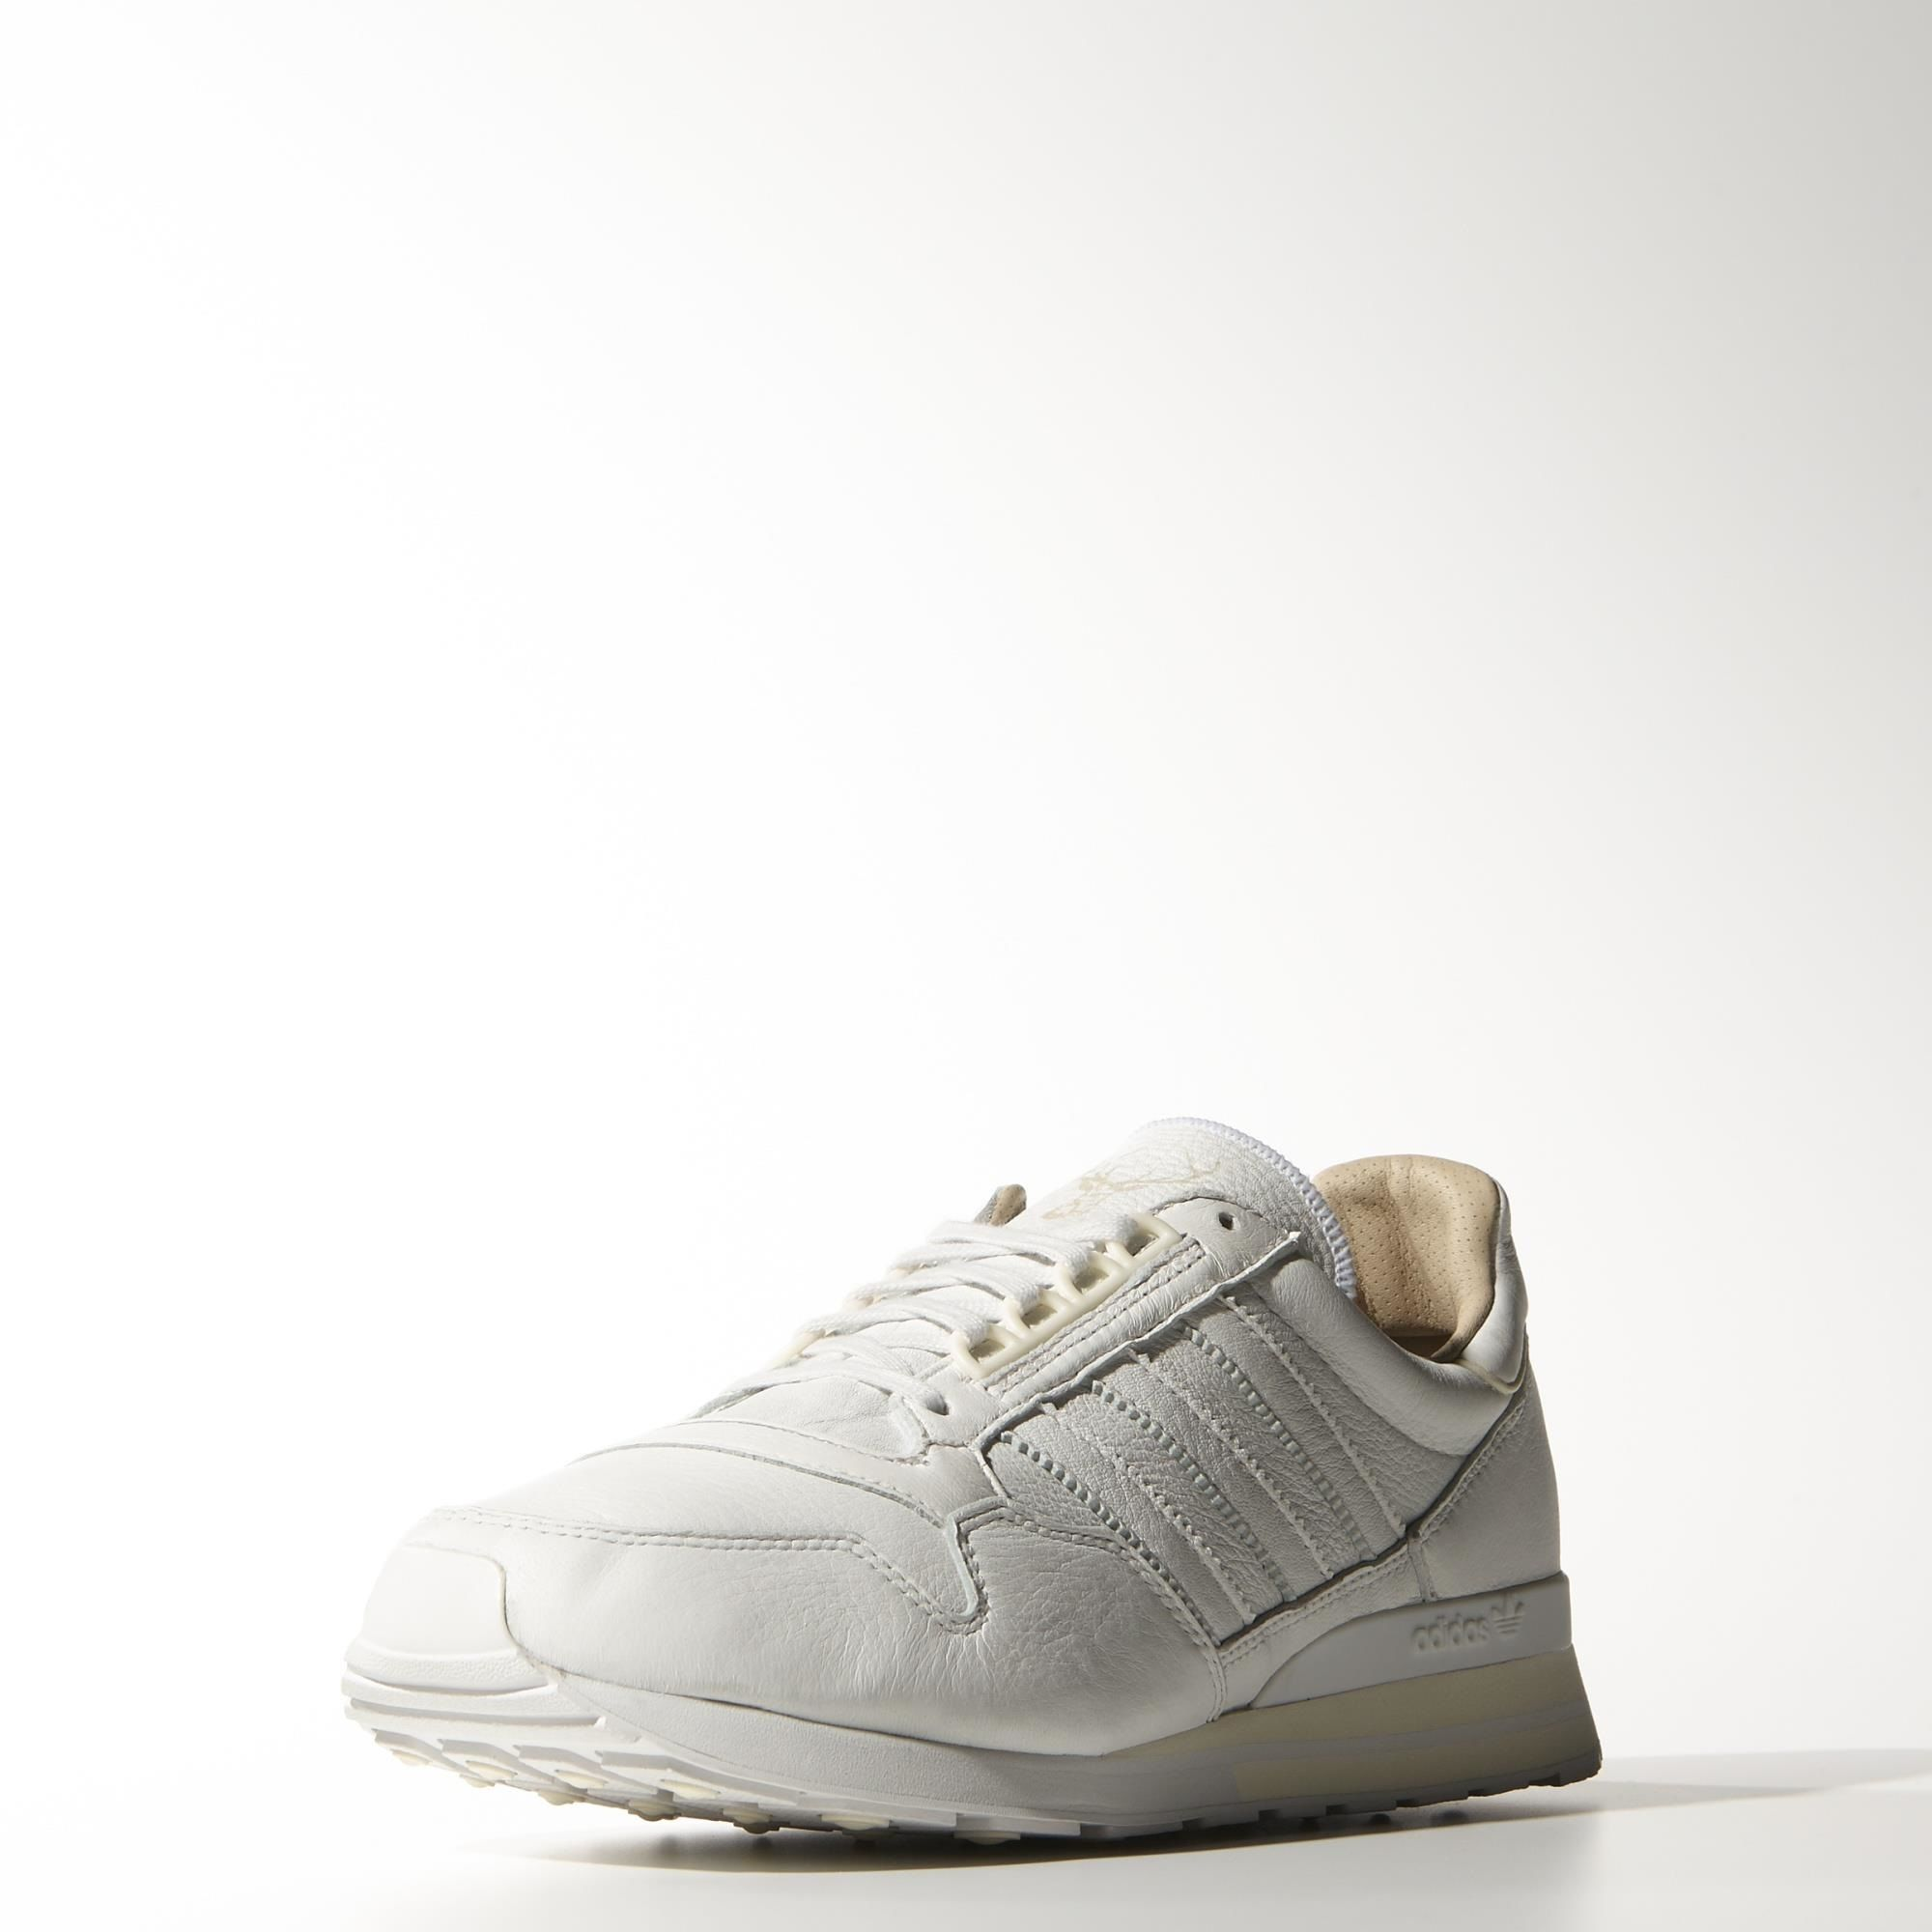 adidas ZX 500 OG Made in Germany Schuh | (Still) Made in